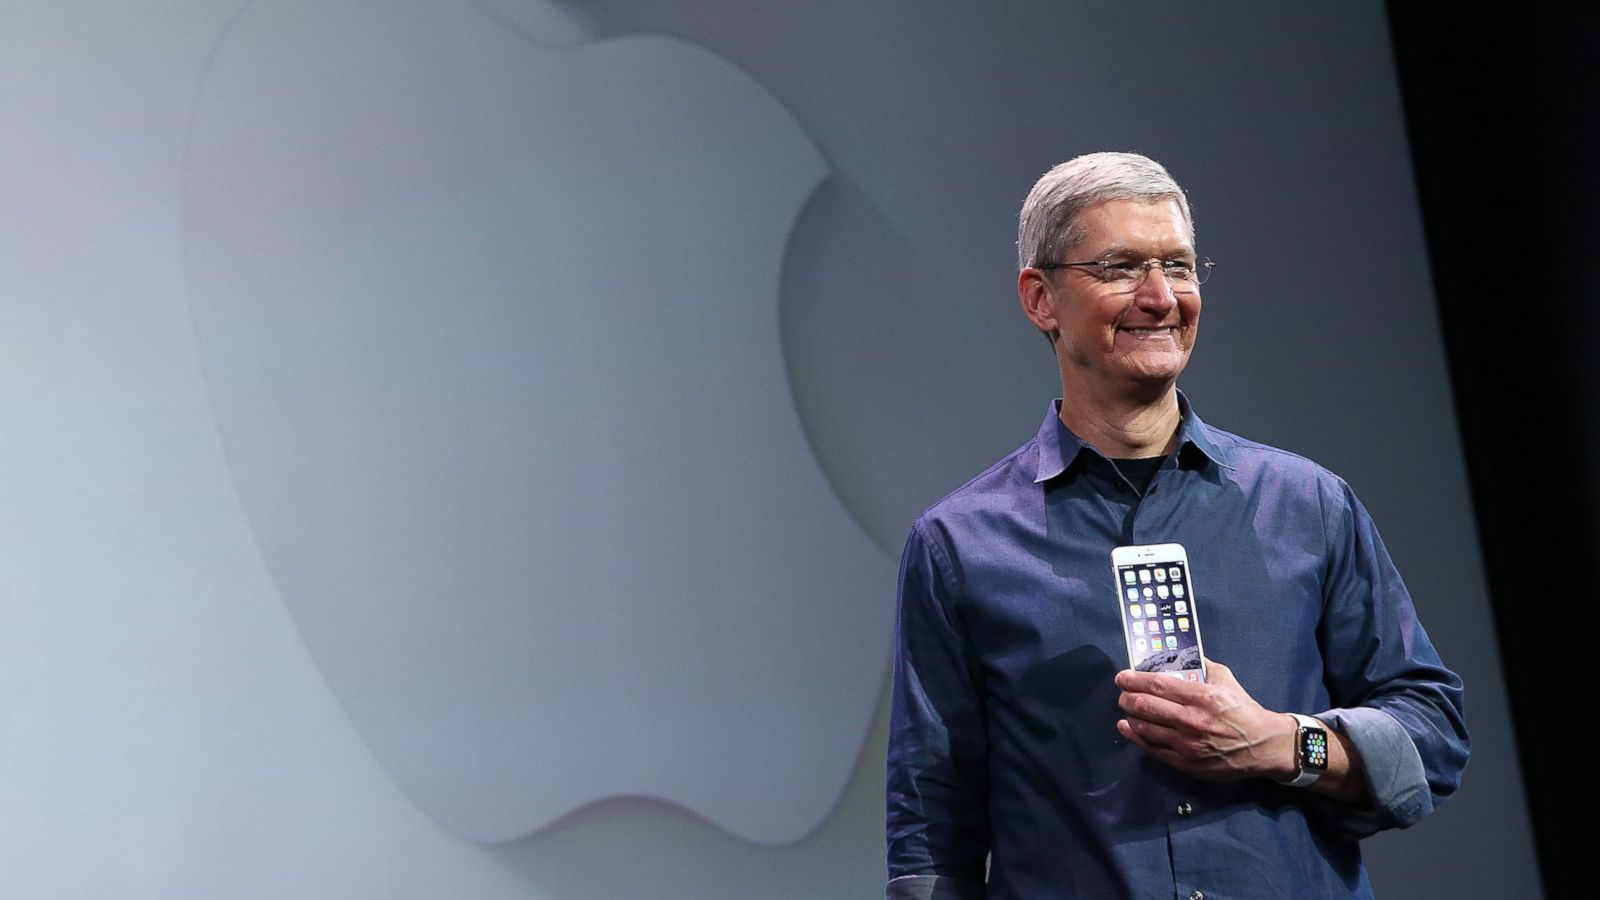 Discussion on this topic: Apple CEO Steve Jobs Resigns Amid Battle , apple-ceo-steve-jobs-resigns-amid-battle/